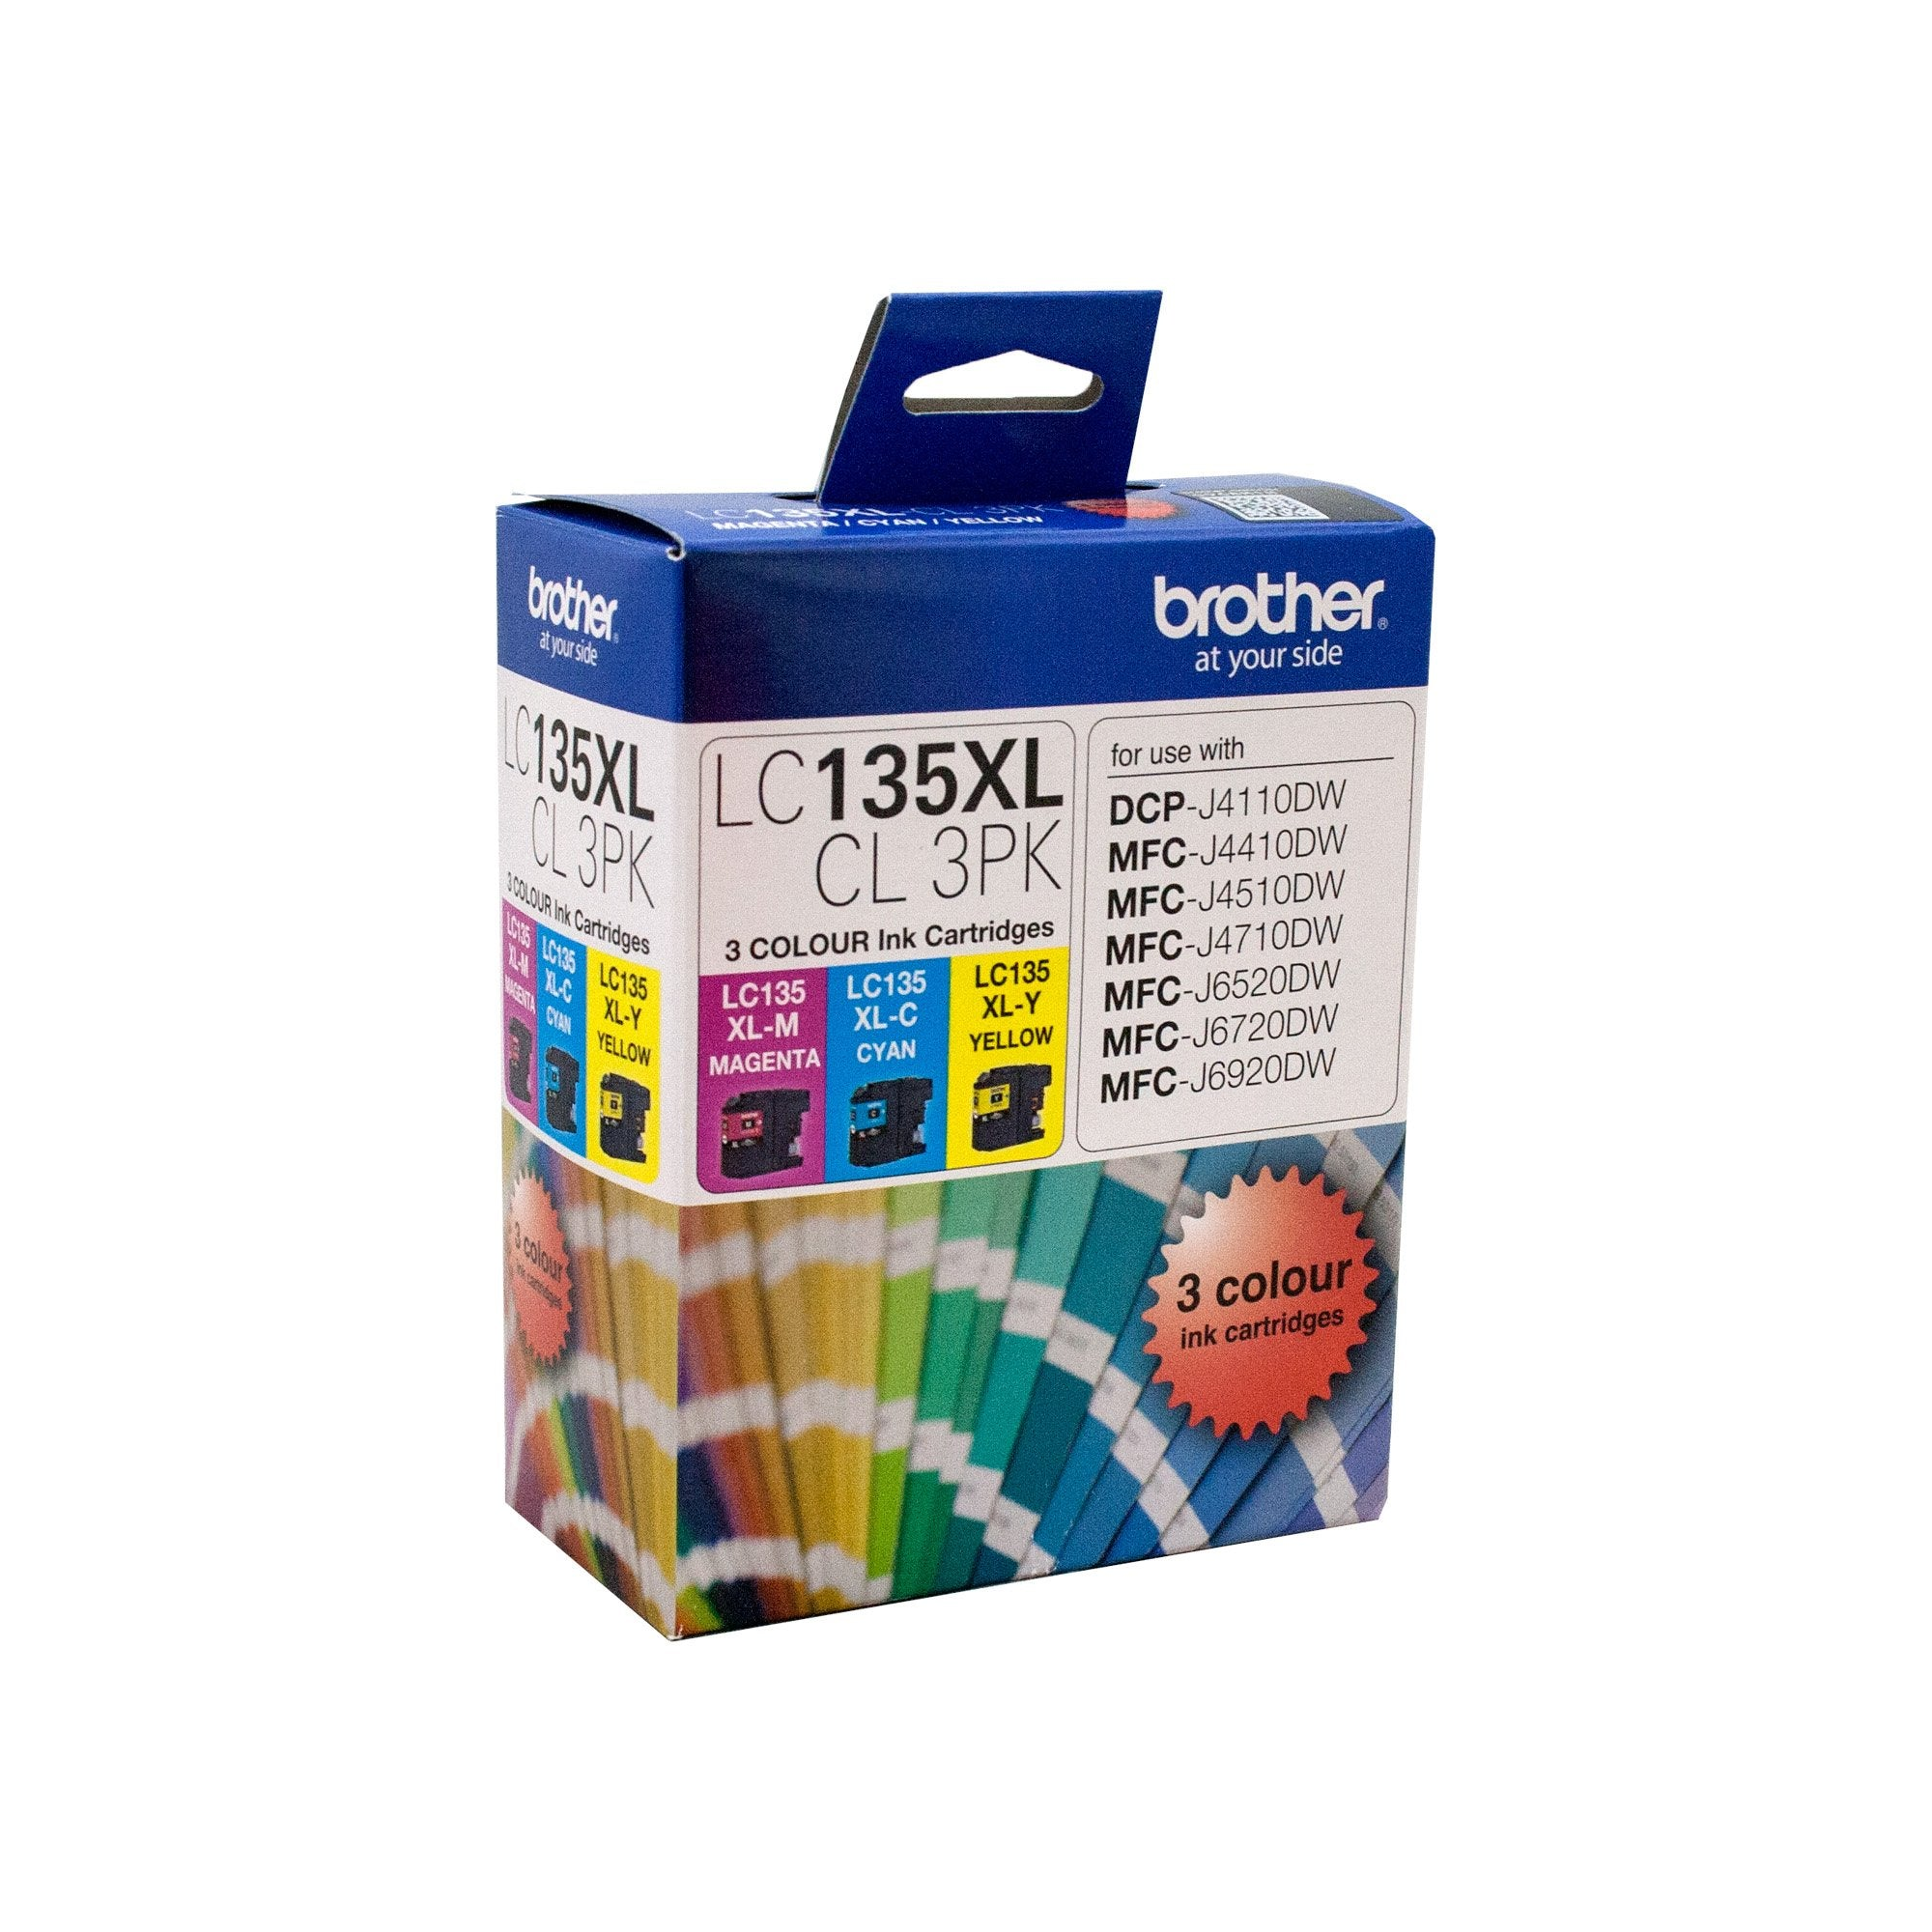 Brother LC-135XLCL3PK Misc Consumables Ink Cartridge